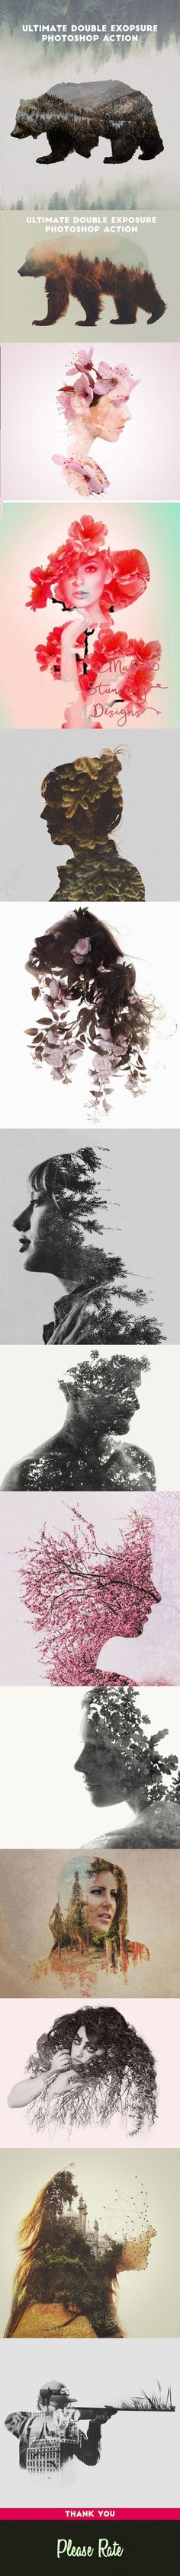 Ultimate Double Exposure Photoshop Action - Photo Effects Actions. Photoshop tips. Cool Photoshop, Photoshop Design, Photoshop Actions, Photoshop Tutorial, Photoshop Express, Photography Projects, Photography Tutorials, Creative Photography, Photoshop Photography